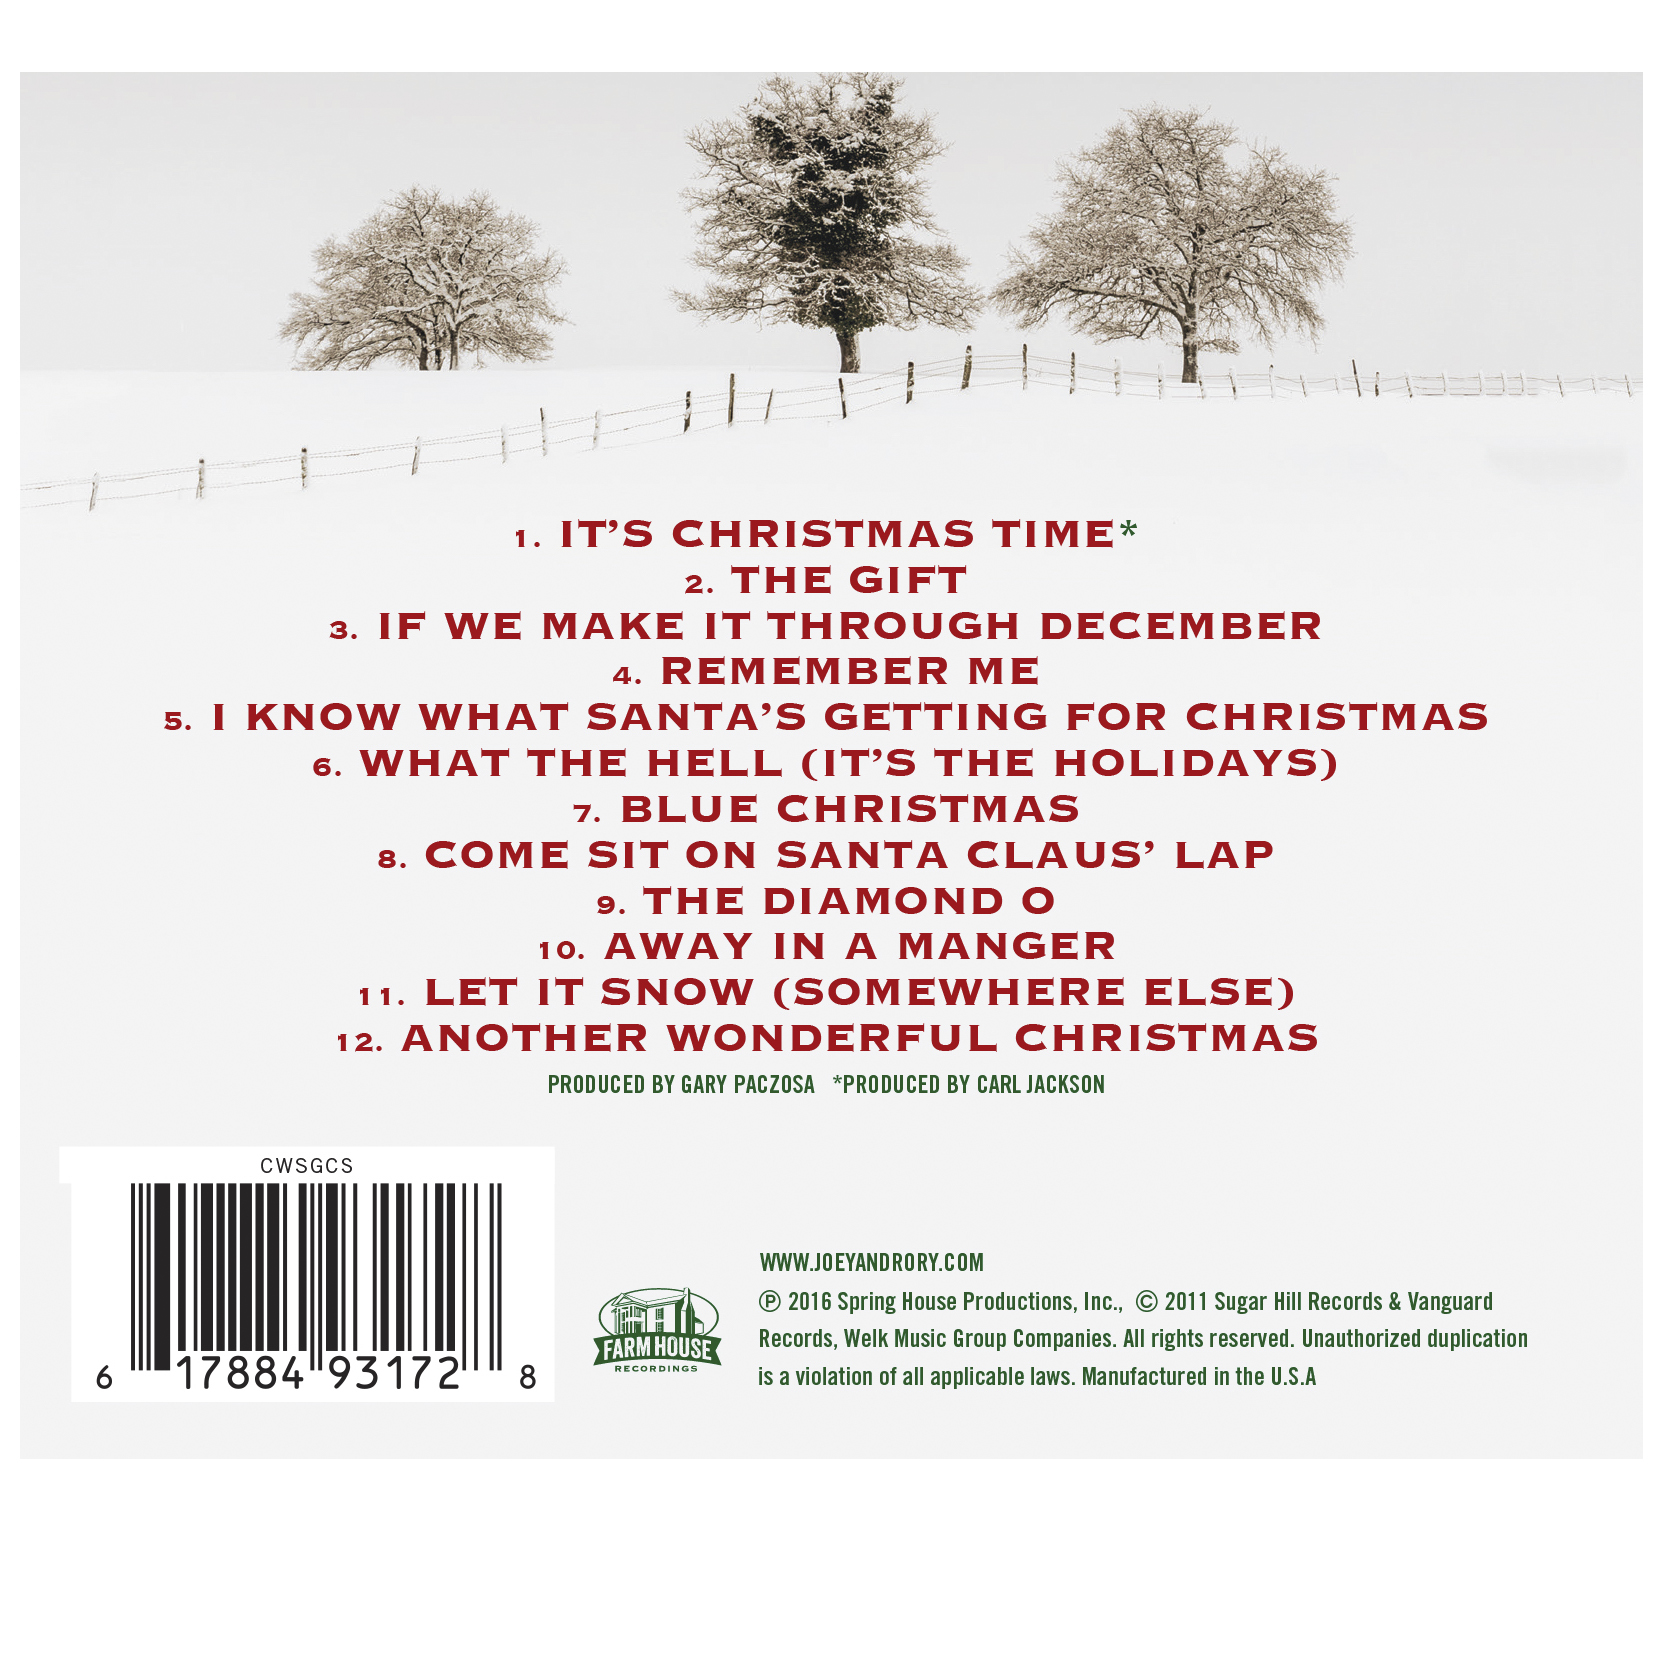 Joey+Rory - Farmhouse Christmas CD | Music | Country Today - Cracker ...